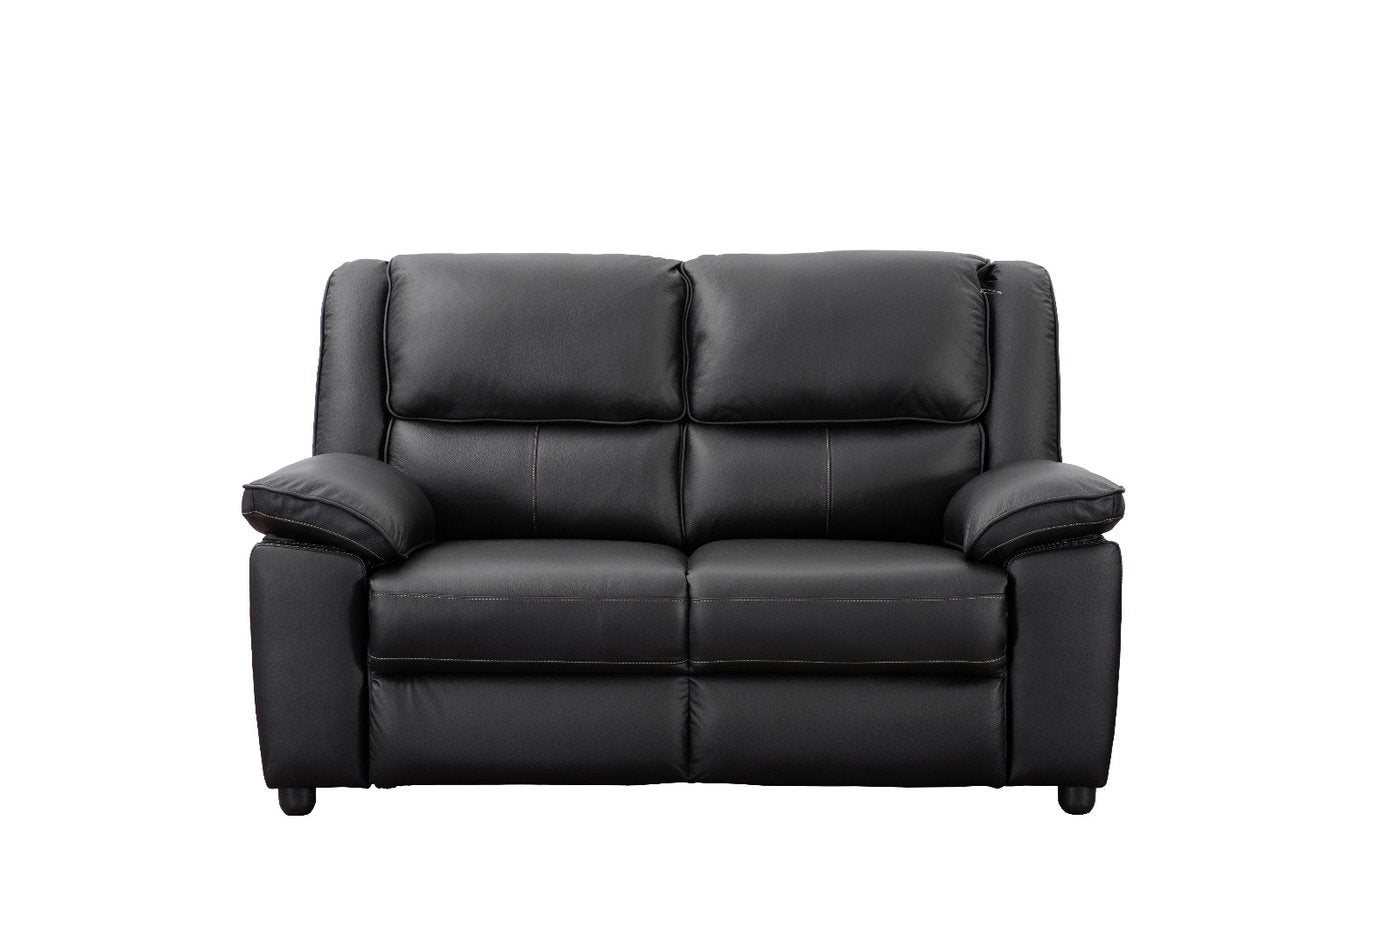 Paris 3 and 2 Seater Leather Sofa Set - Power Recliner | BLACK ...